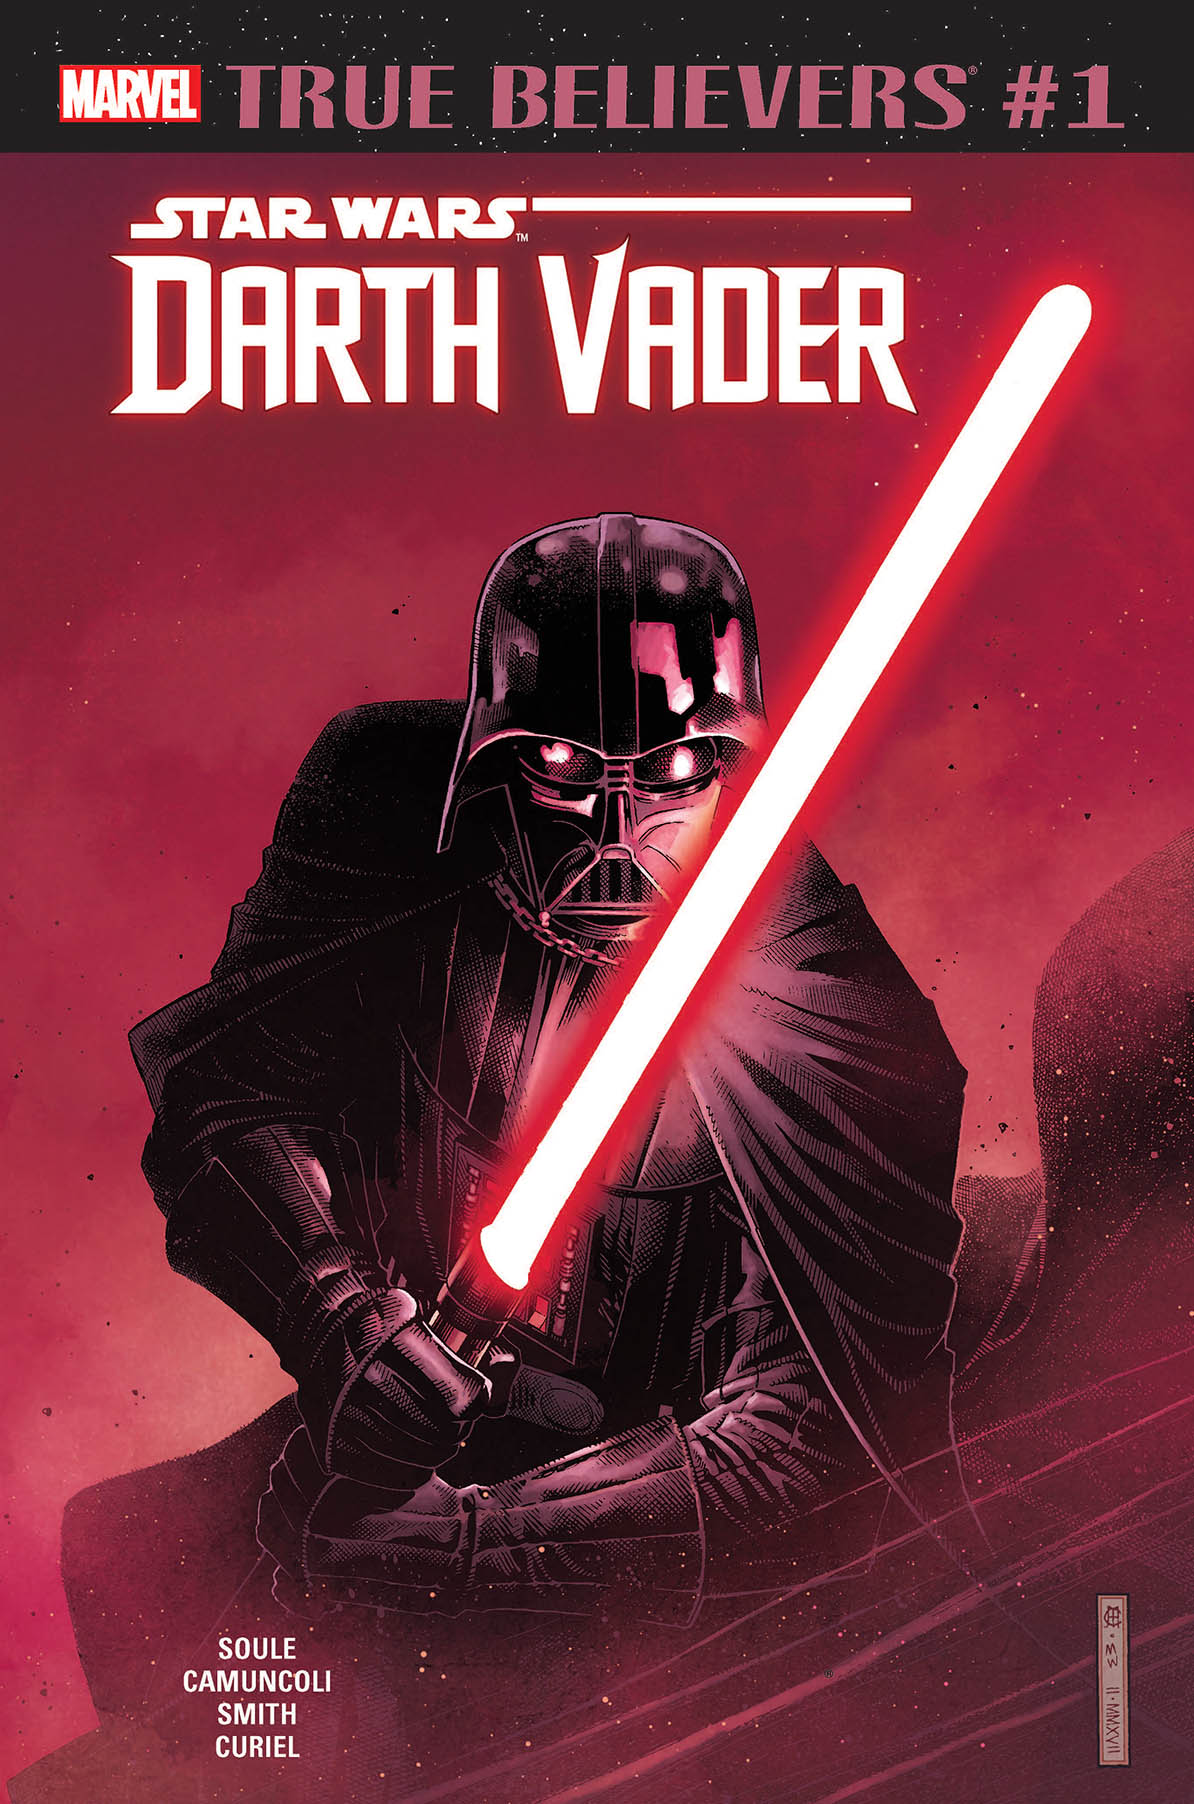 TRUE BELIEVERS STAR WARS DARTH VADER #1 + 1 Adet Yerli Karton ve Poşet